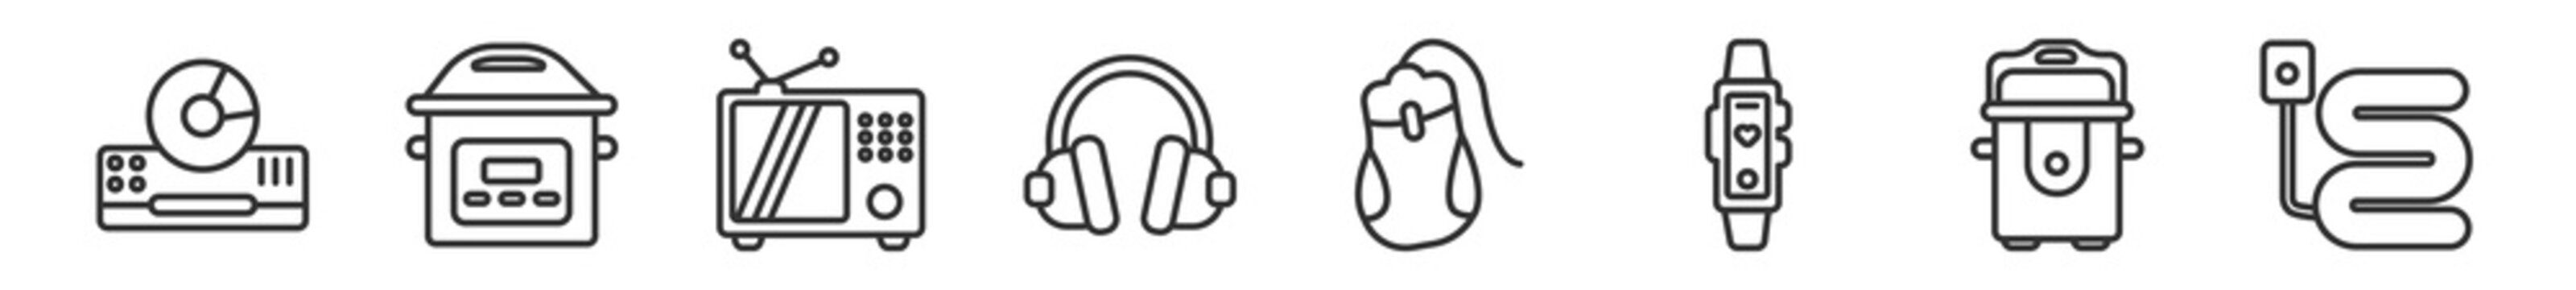 outline set of electronic devices line icons. linear vector icons such as dvd player, pressure cooker, television, devices, mouse, electric blanket. vector illustration.